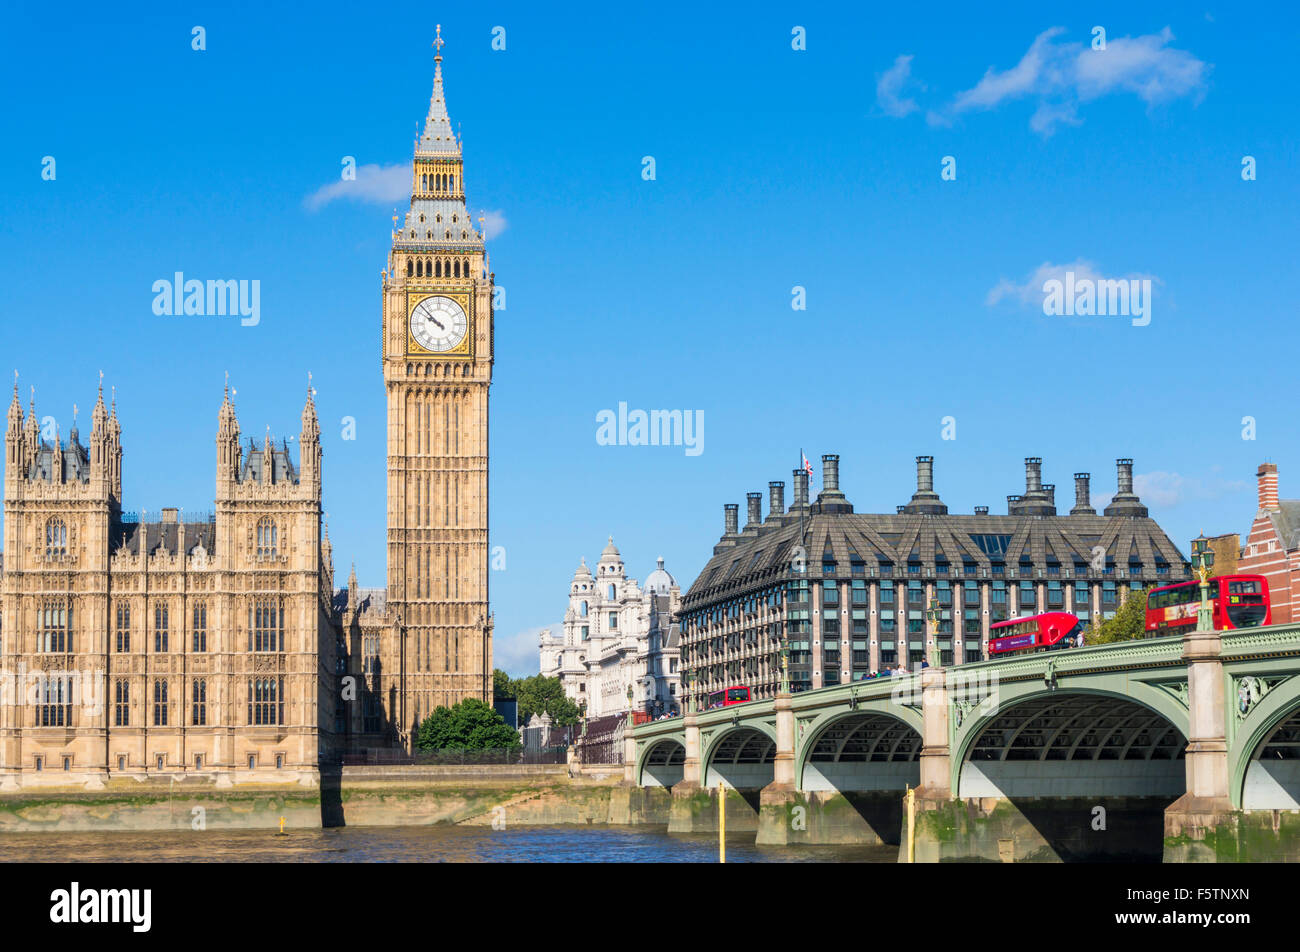 Big Ben clock tower Houses of Parliament and Westminster bridge over the River Thames City of London England GB - Stock Image